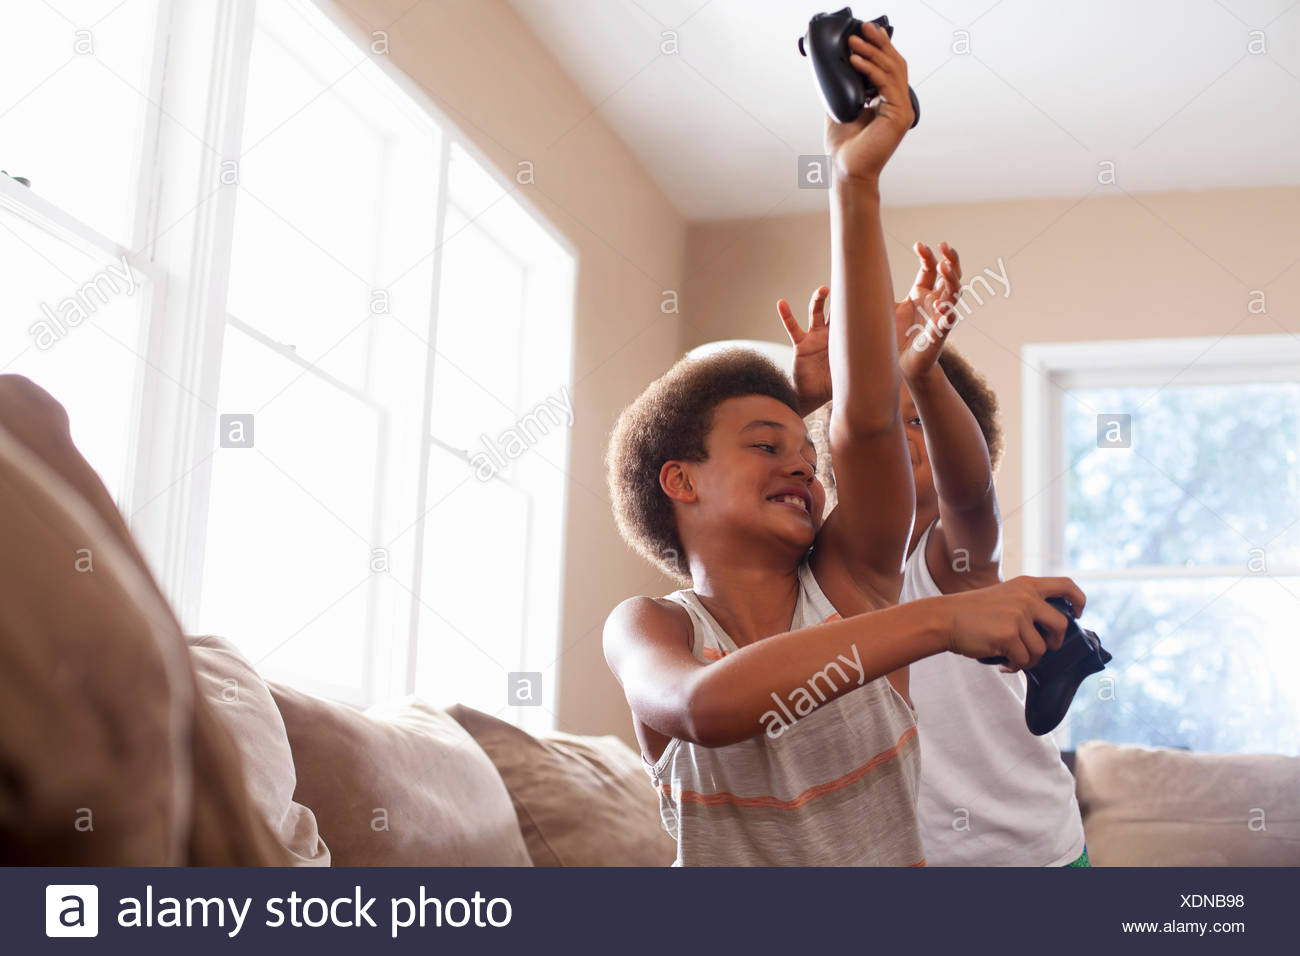 Two brothers playfighting over game controllers in living room - Stock Image